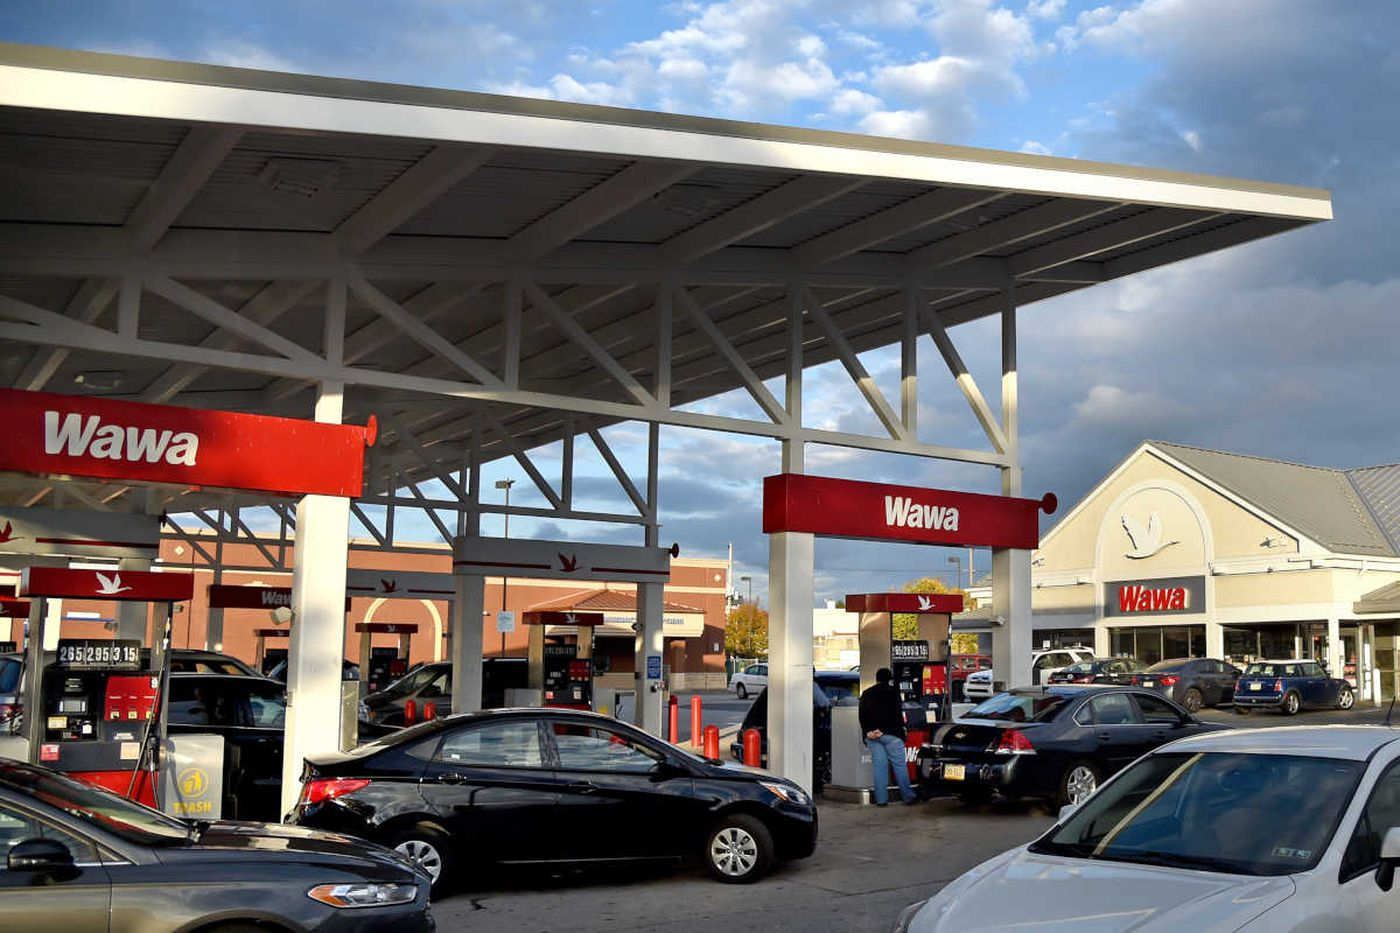 Blatstein angers neighborhood group with plans for Wawa fueling station on S. Philly's Delaware waterfront